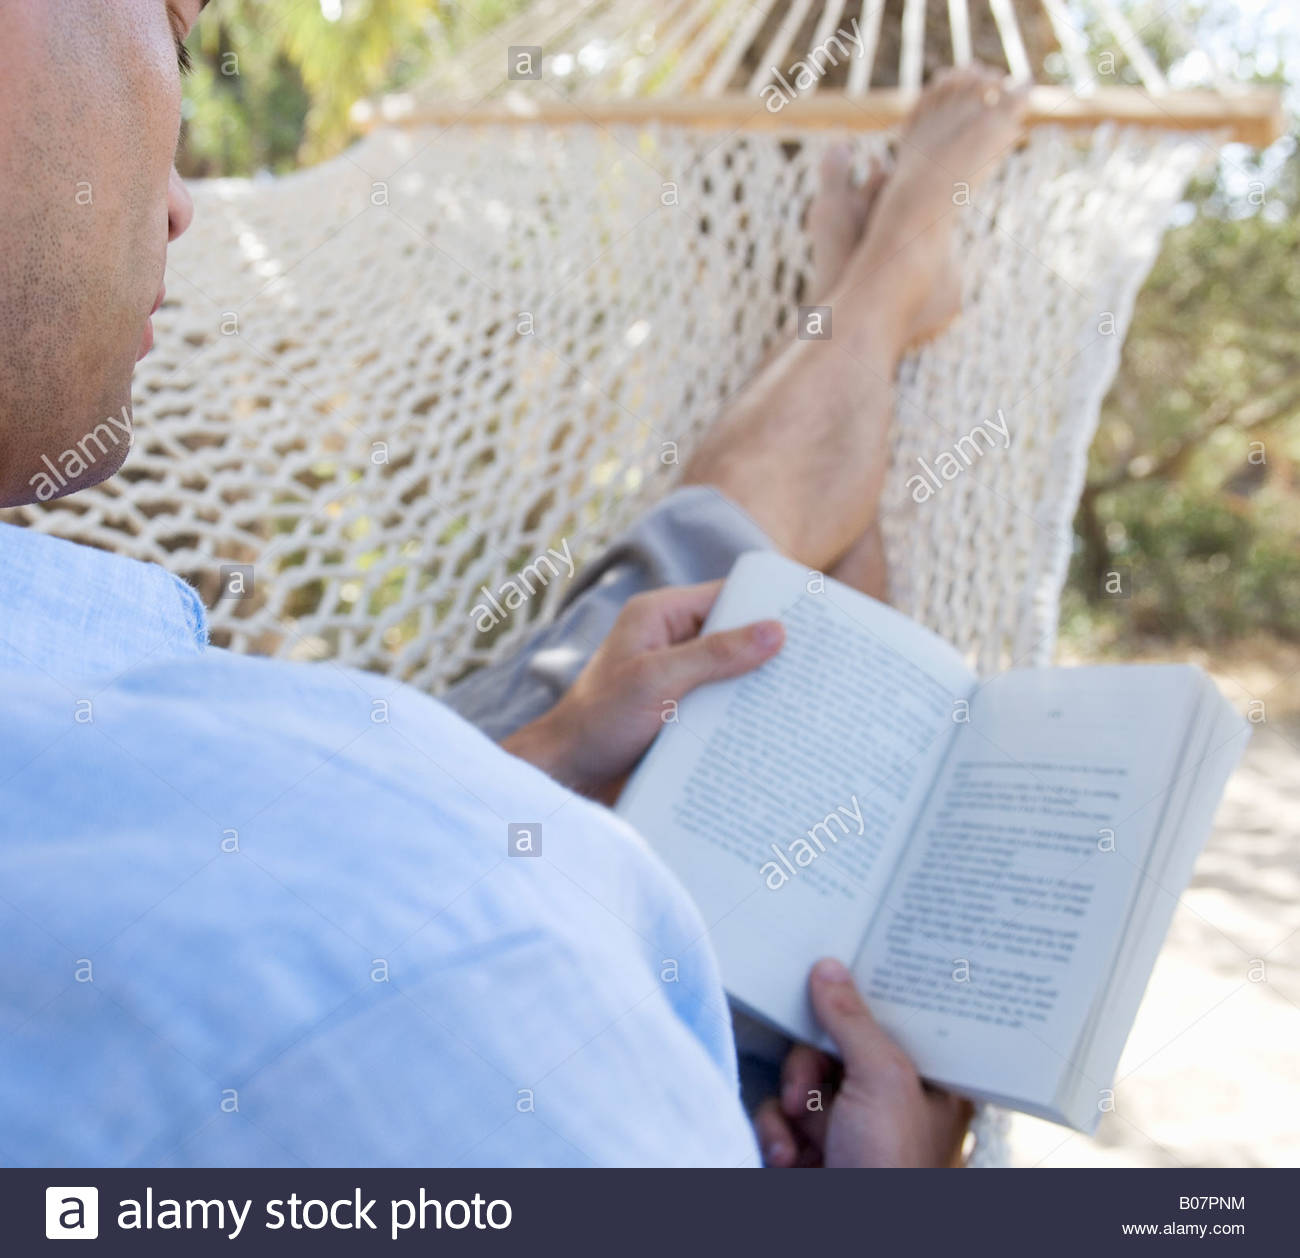 A man relaxing in a hammock - Stock Image